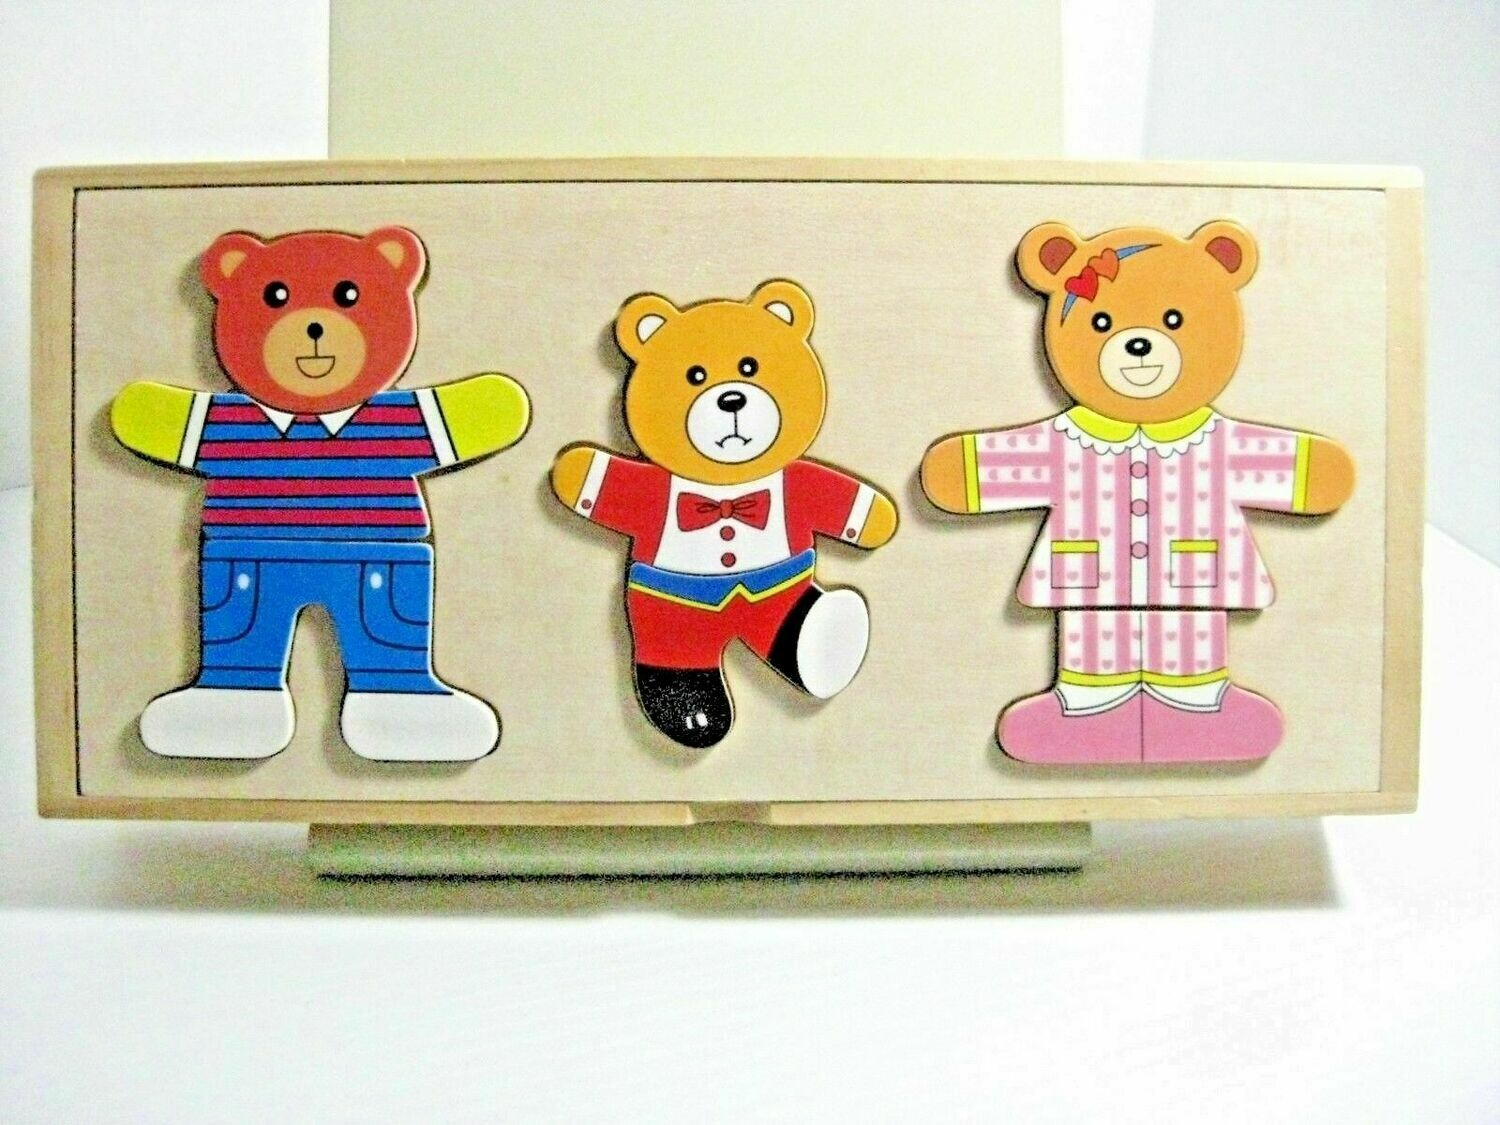 THREE TEDDY BEARS WOODEN CHANGEABLE PUZZLE PIECES